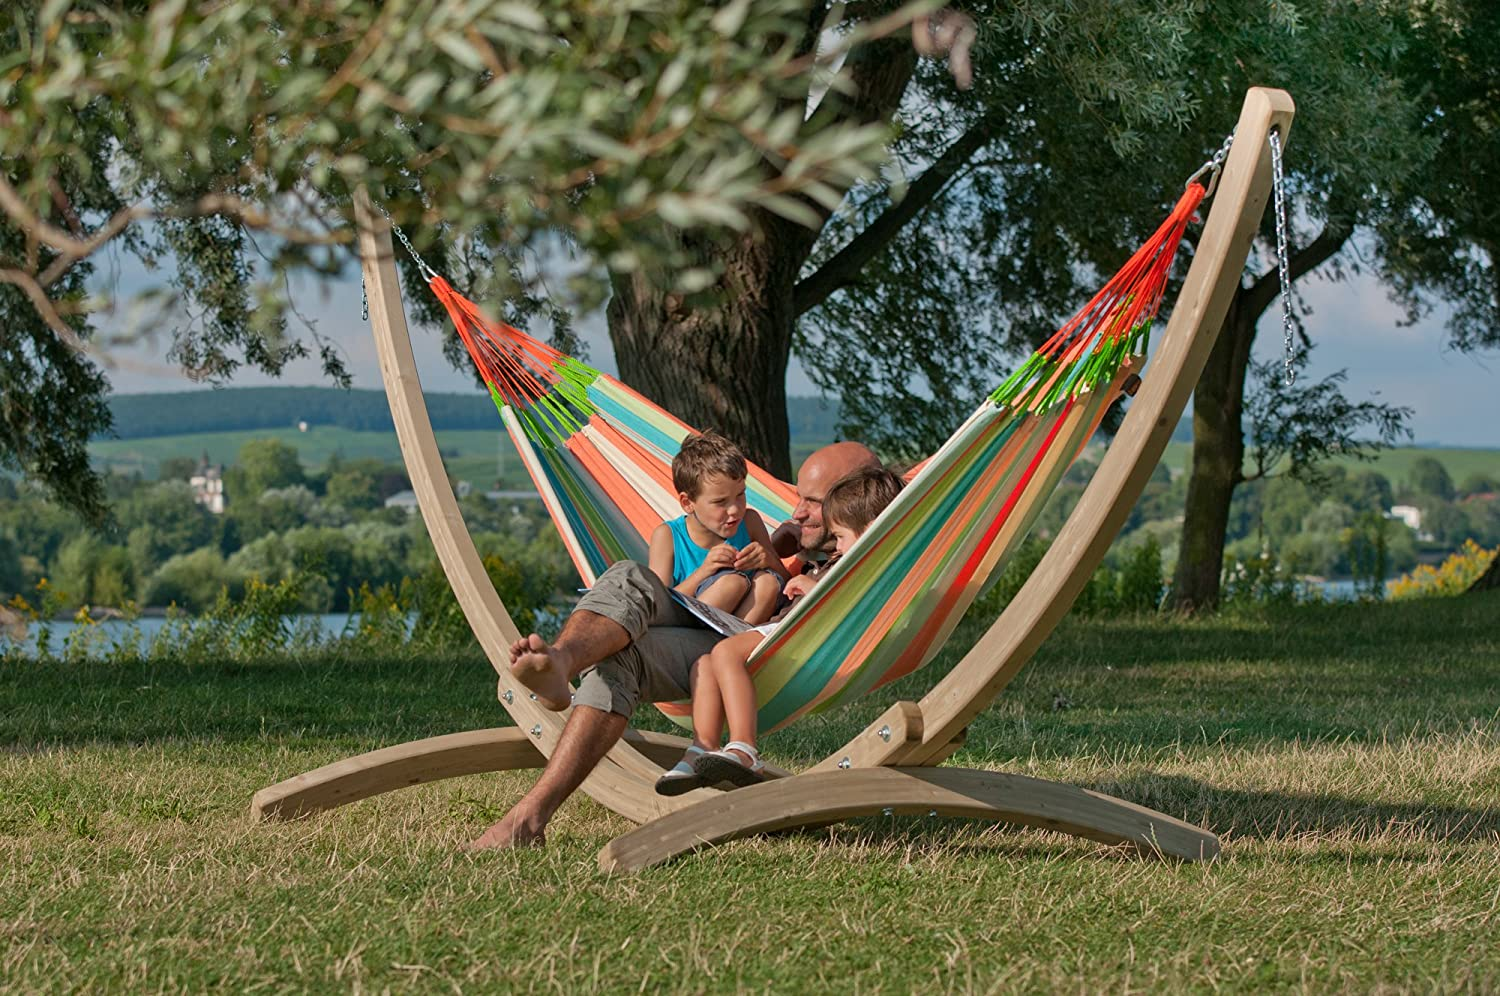 Amazon.com : LA SIESTA Domingo Coral - Weather-Resistant Kingsize Classic  Hammock : Patio, Lawn & Garden - Amazon.com : LA SIESTA Domingo Coral - Weather-Resistant Kingsize